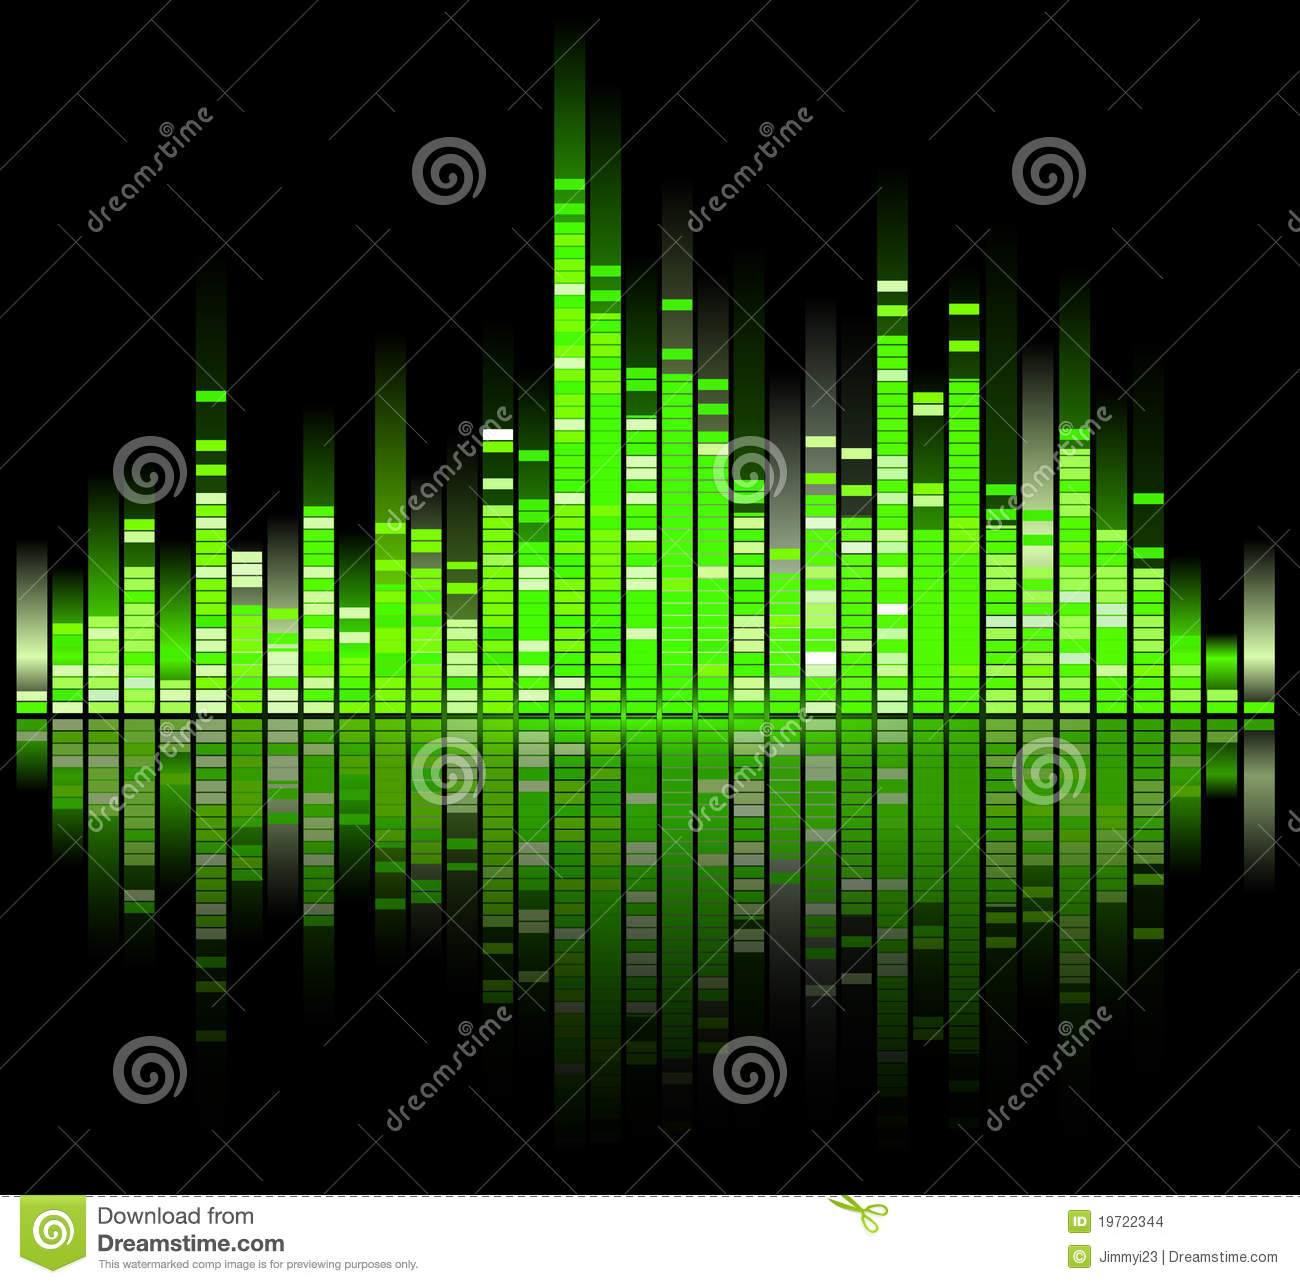 Stock Images Green Digital Sound Equalizer Image19722344 further Wavelength en moreover Stephen E Smith Jr Joins Lo obi Advisory Board moreover Beginners Guide To Acoustic Treatment Audio 1274 together with 1314181. on radio frequency reflection